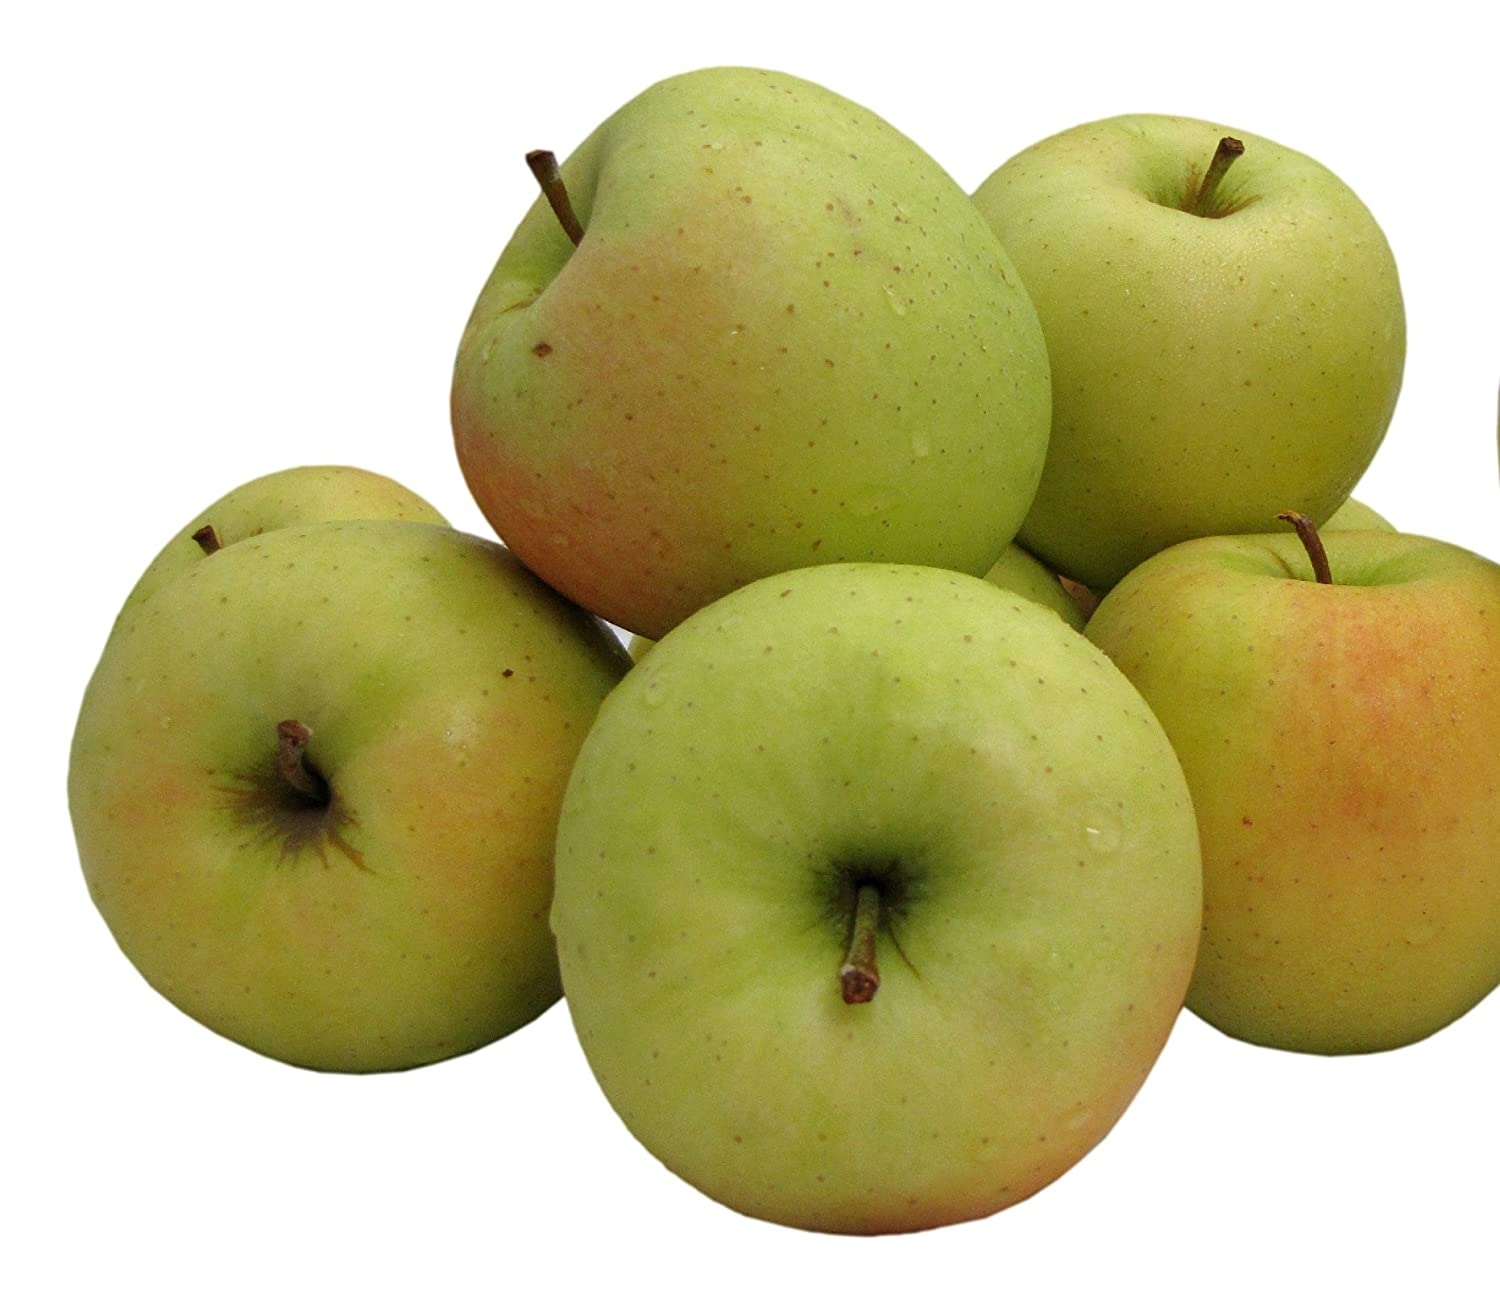 Kauffman Orchards Homegrown Golden Delicious Apples, Fresh-Picked in Lancaster County, Pennsylvania (Box of 8)